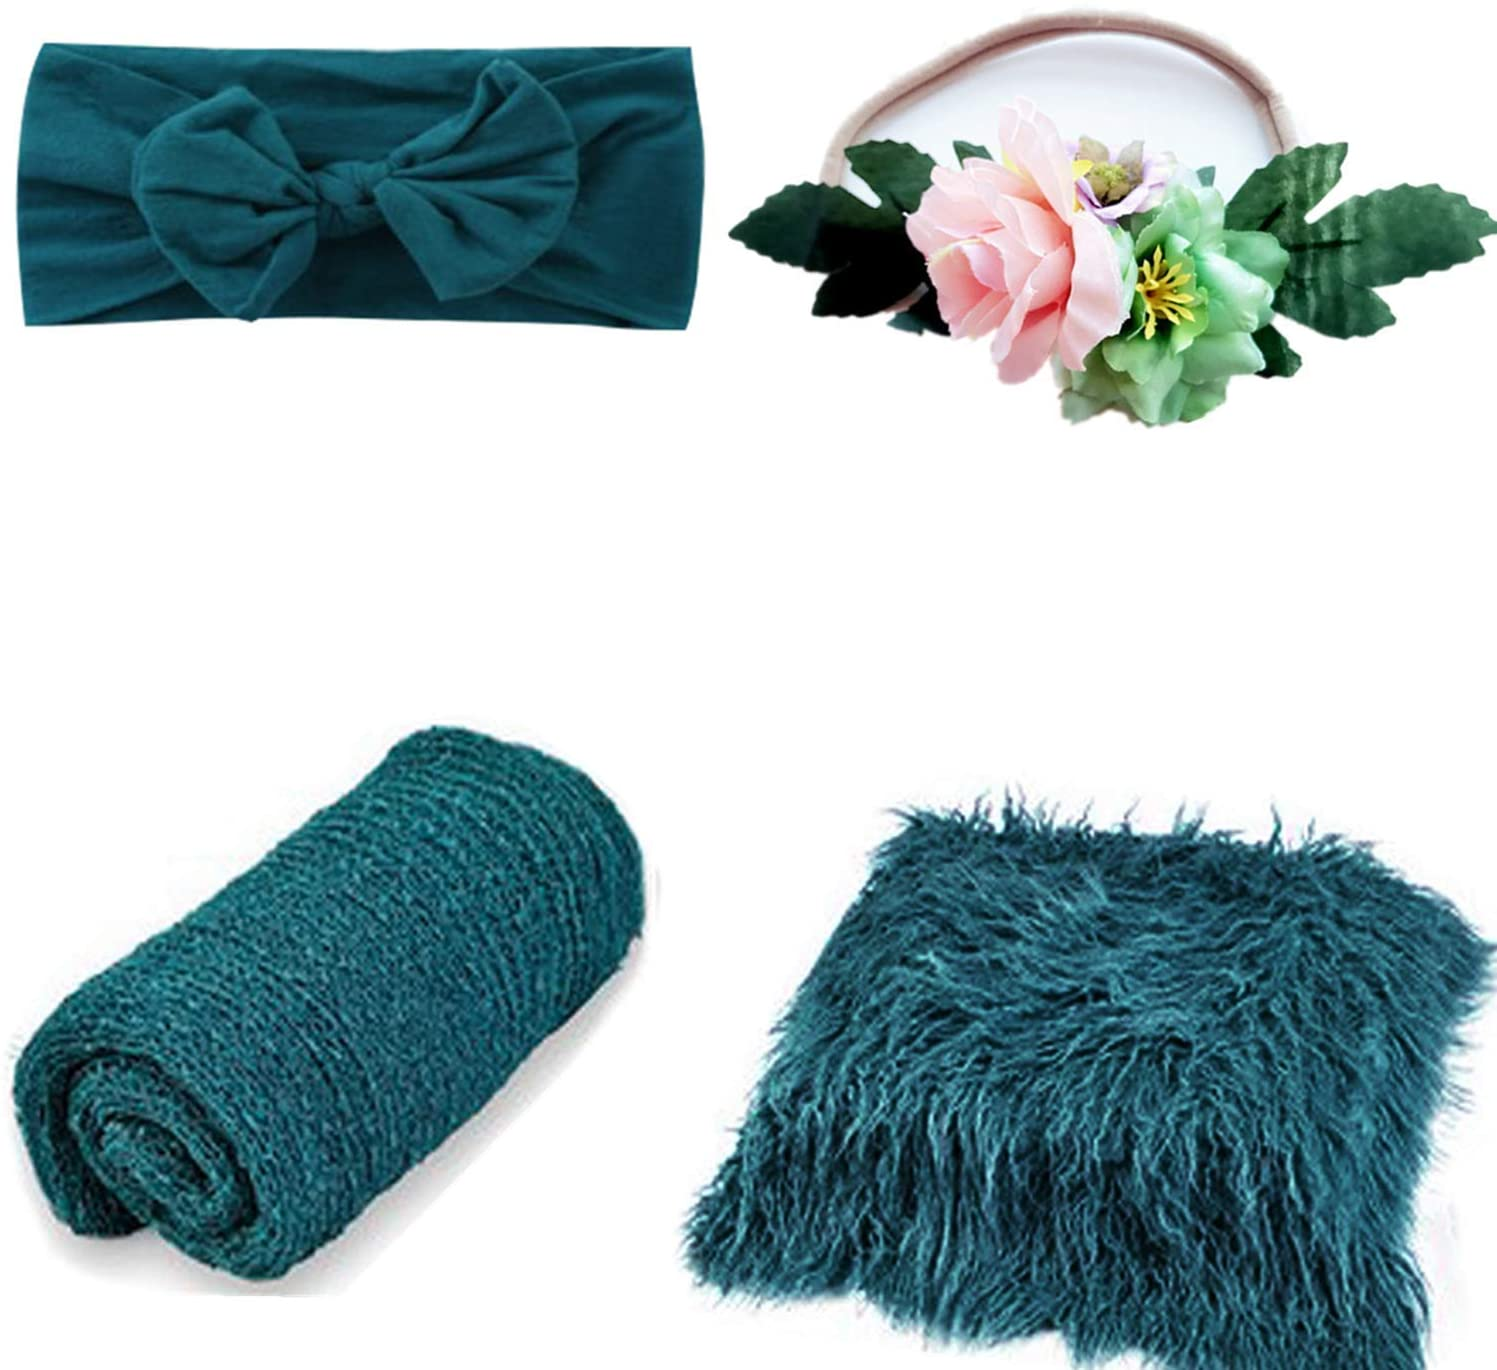 4 Pcs Newborn Photography Props Outfits- Baby Dark Green Long Ripple Wrap and Toddler Swaddle Blankets Photography Mat with Cute Headbands for Infant Boys Girls(0-12 Months)